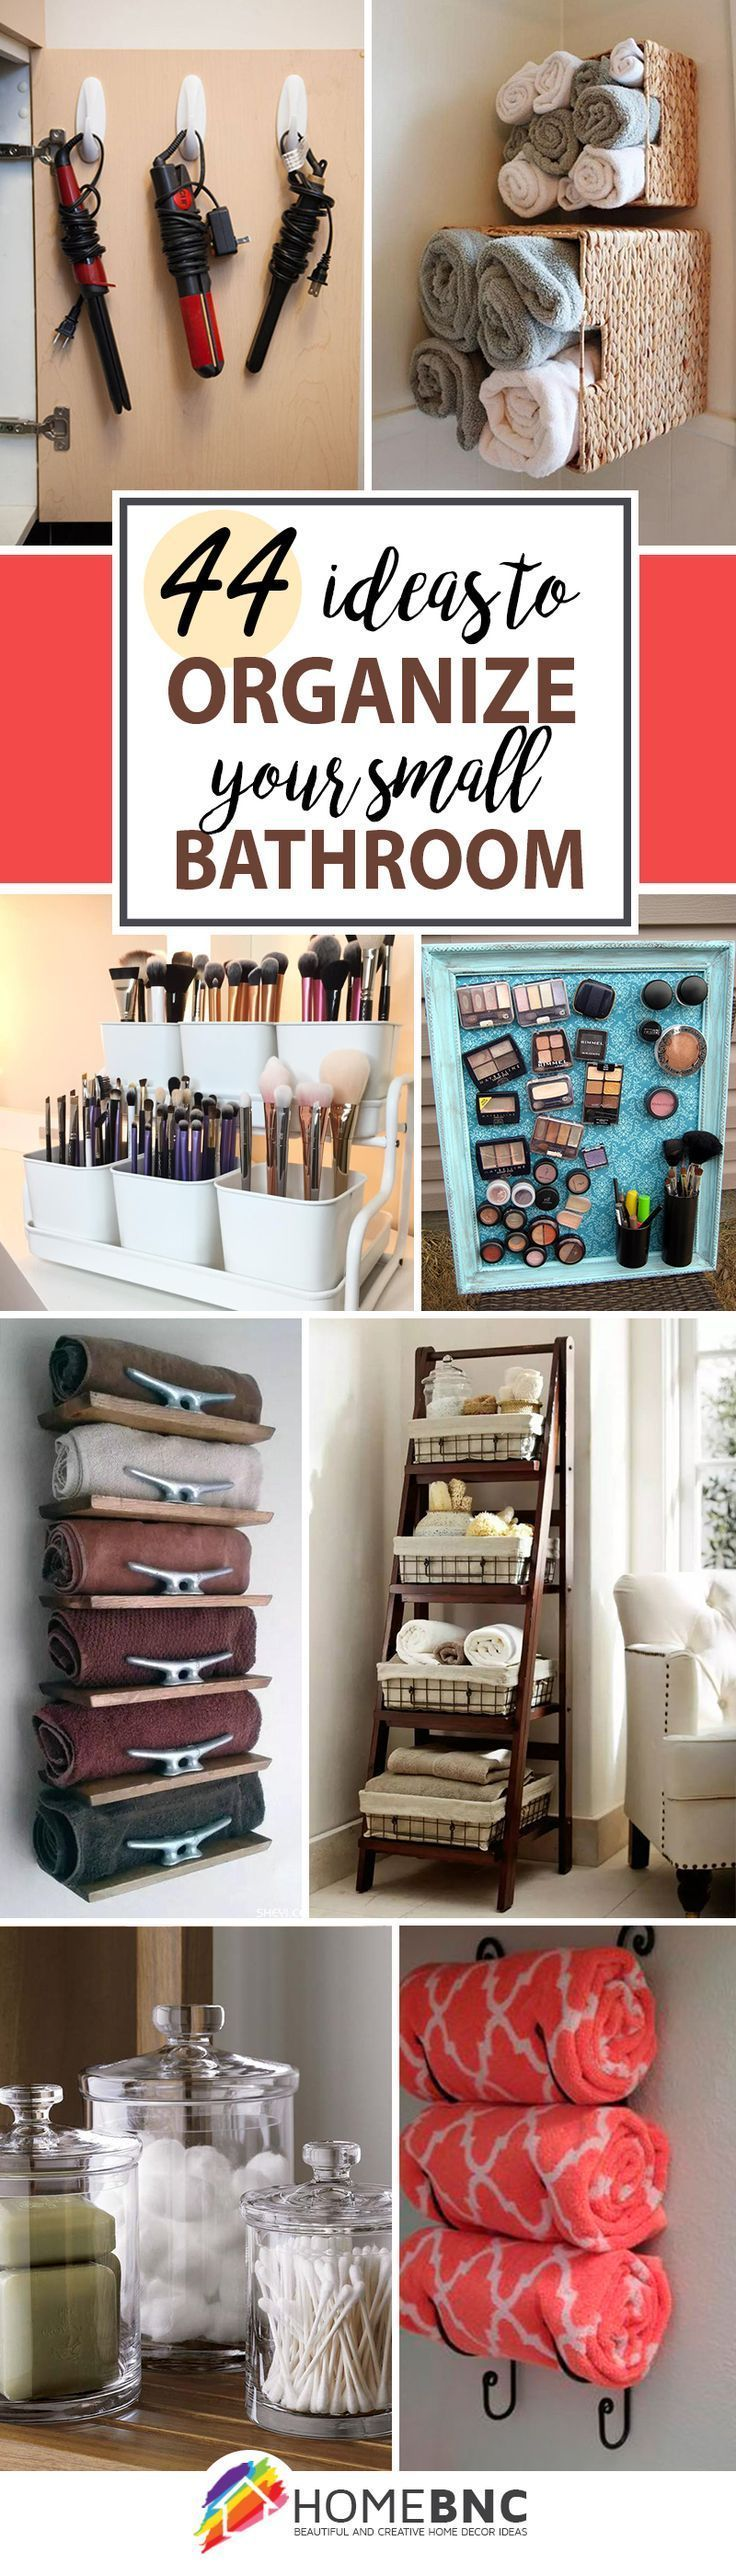 Storage in small bathroom - 44 Unique Storage Ideas For A Small Bathroom To Make Yours Bigger